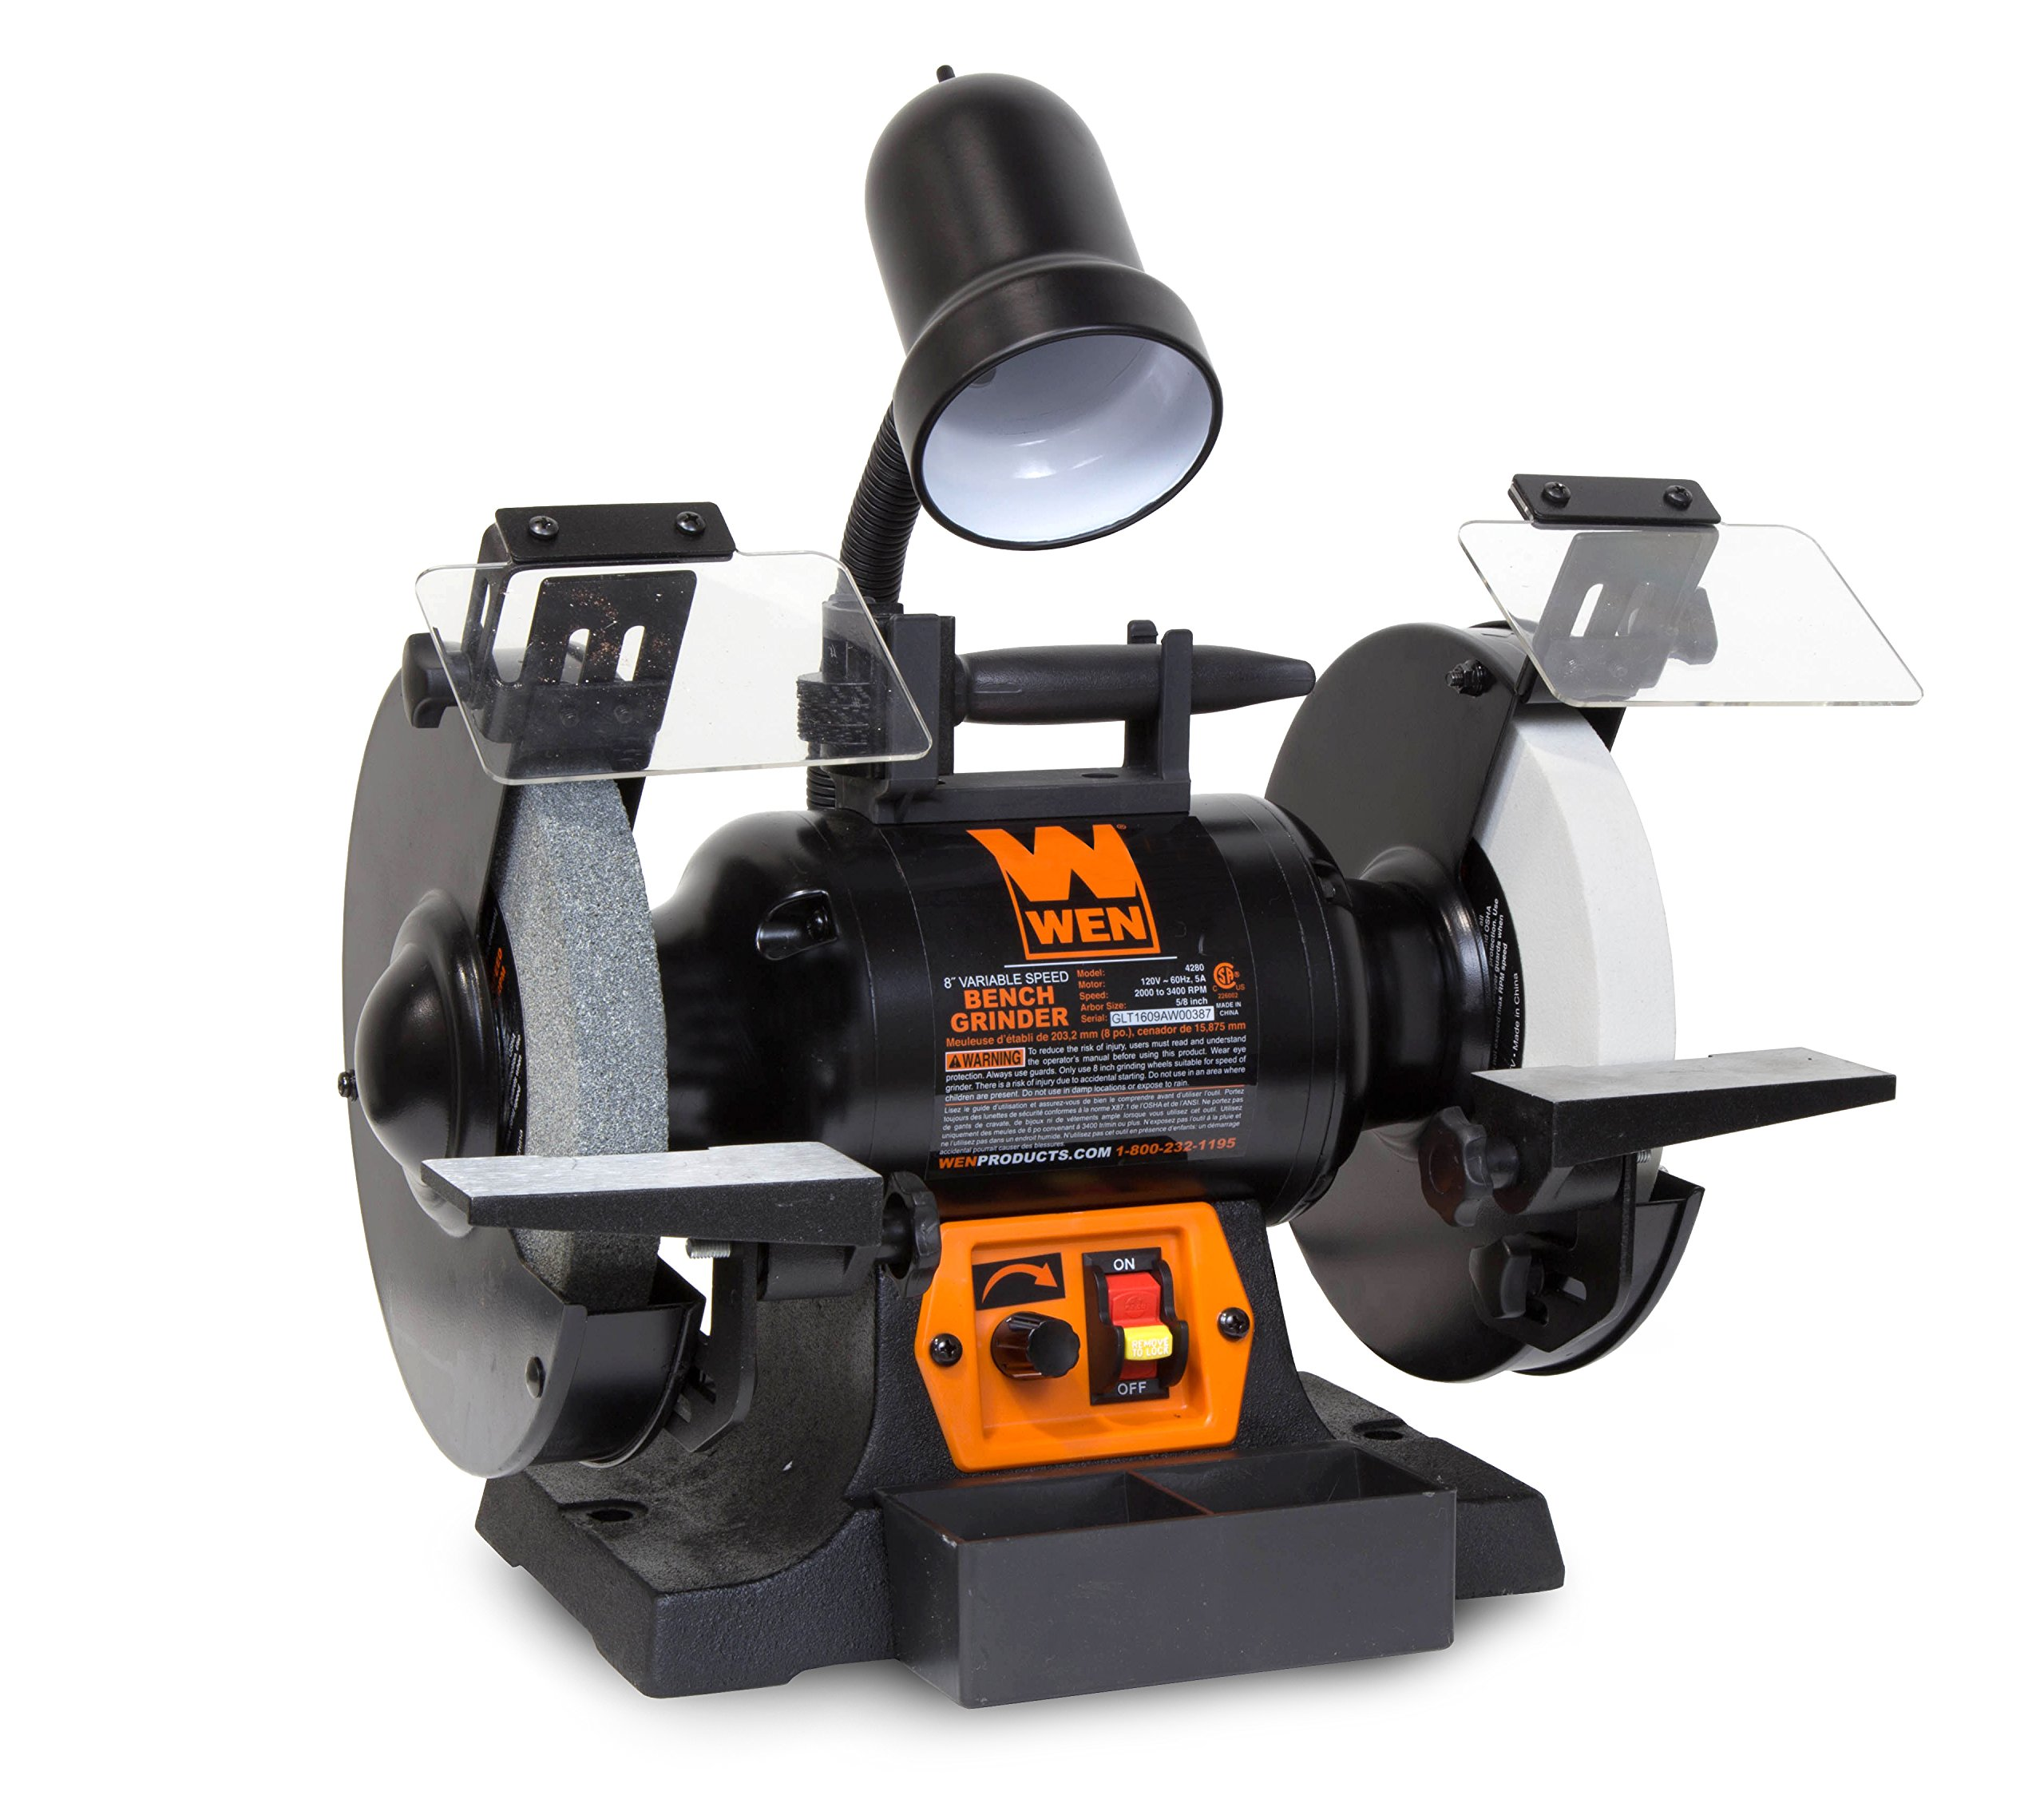 WEN 4280 5 Amp 8'' Variable Speed Bench Grinder with Work Light